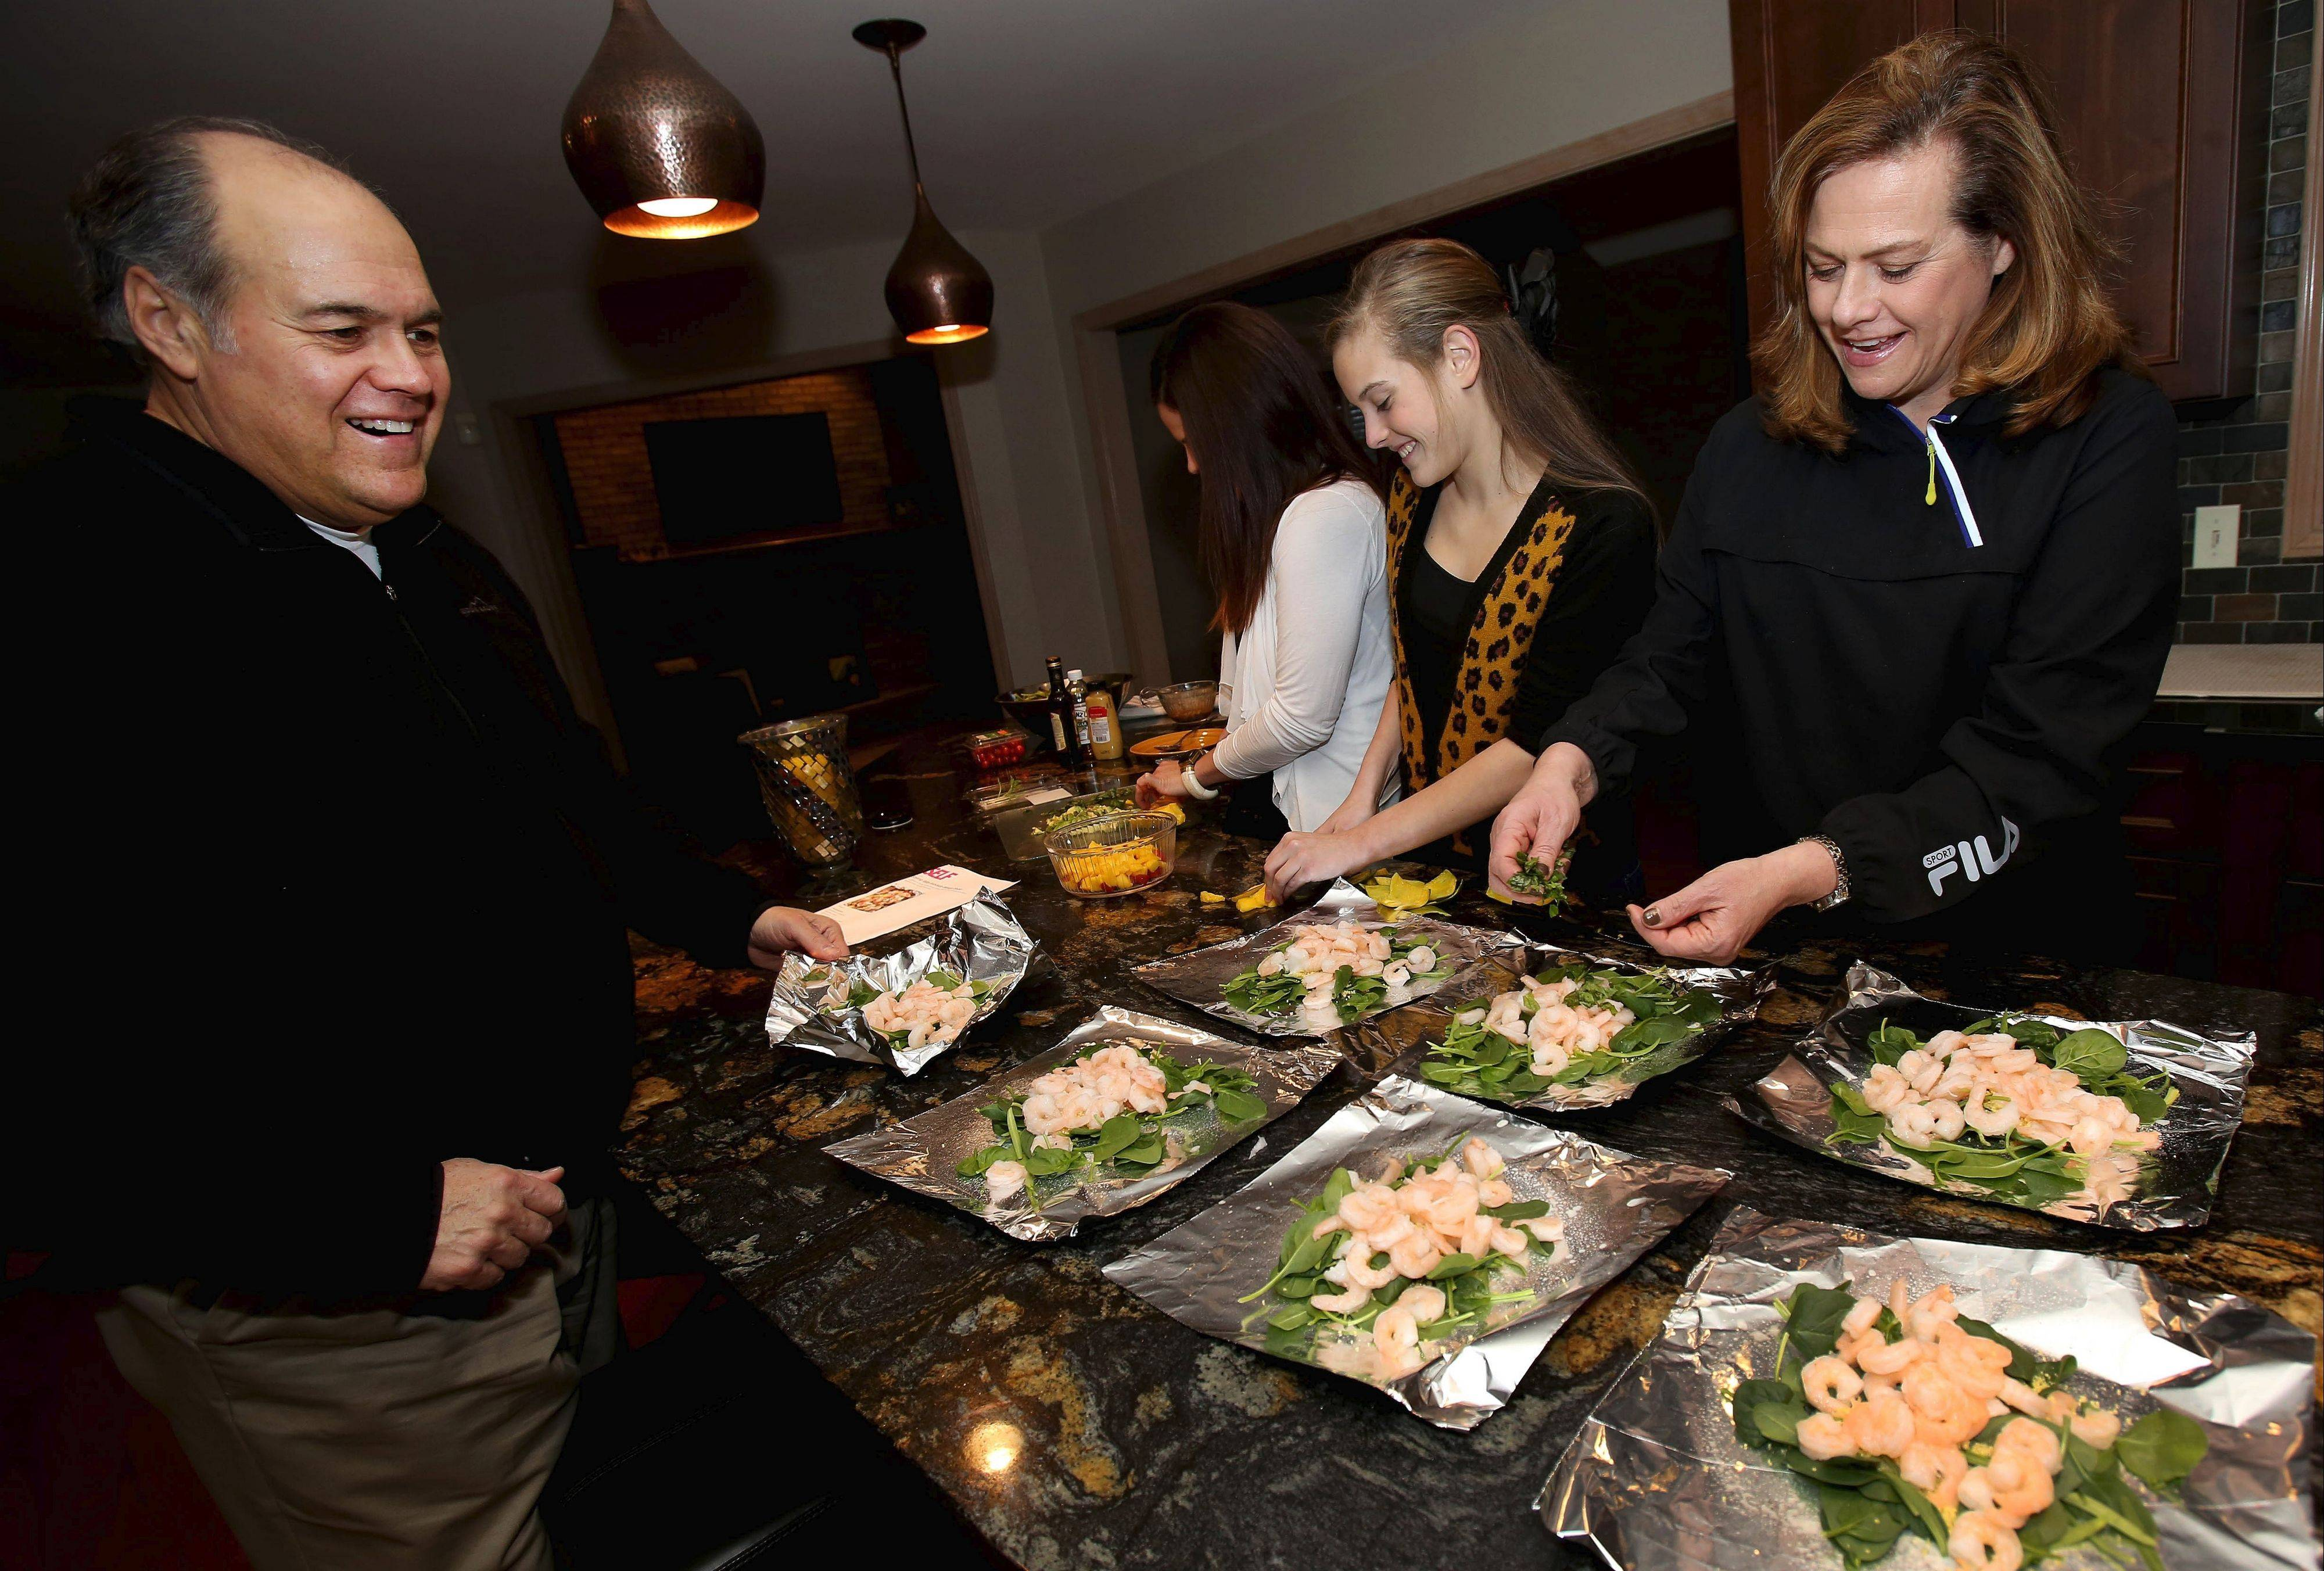 Preparing healthy meals is a family affair for Mike Paulos.